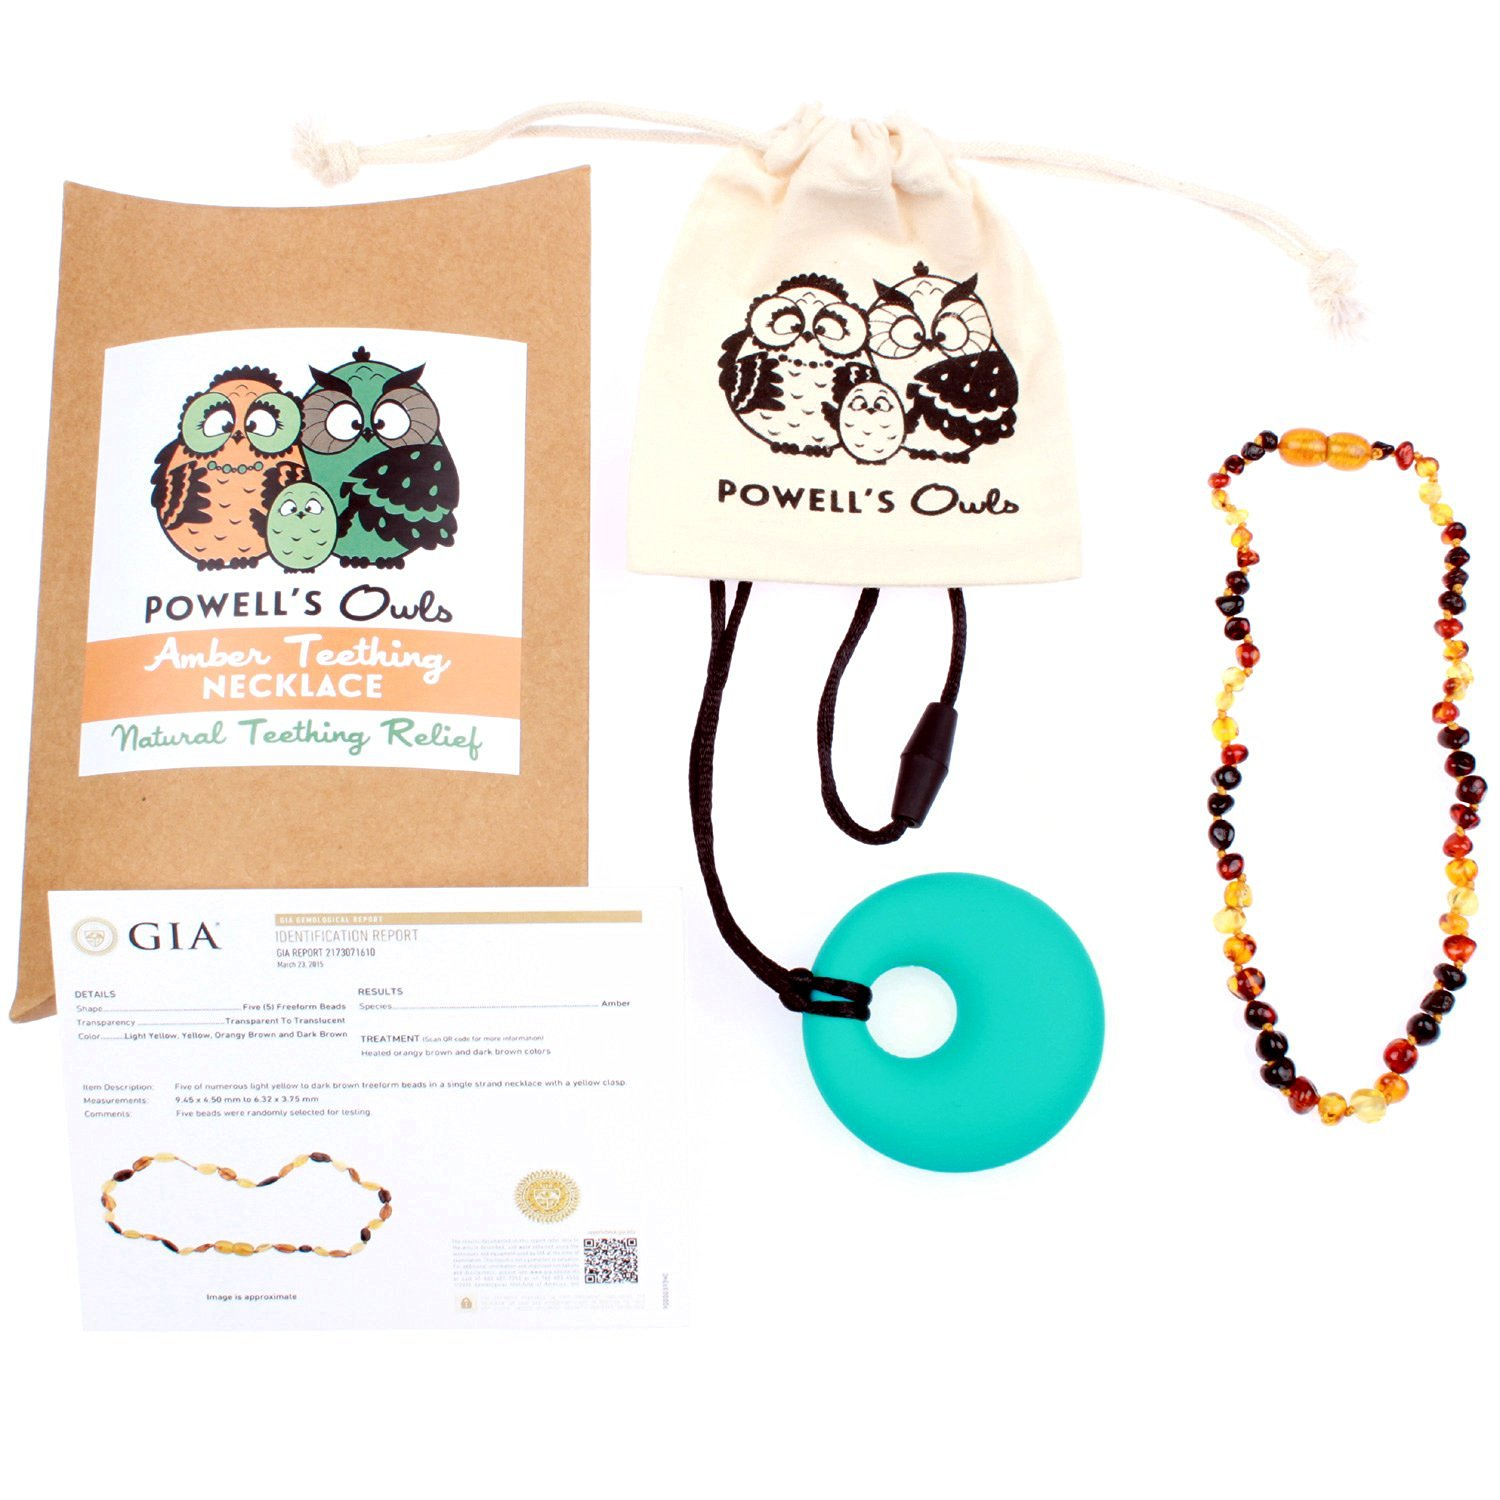 Baltic Amber Teething Necklace Gift Set + FREE Silicone Teething Pendant ($15 Value) Handcrafted, 100% USA Lab-Tested Authentic Amber - Teething Pain Relief (Rainbow - 12.5 Inches)